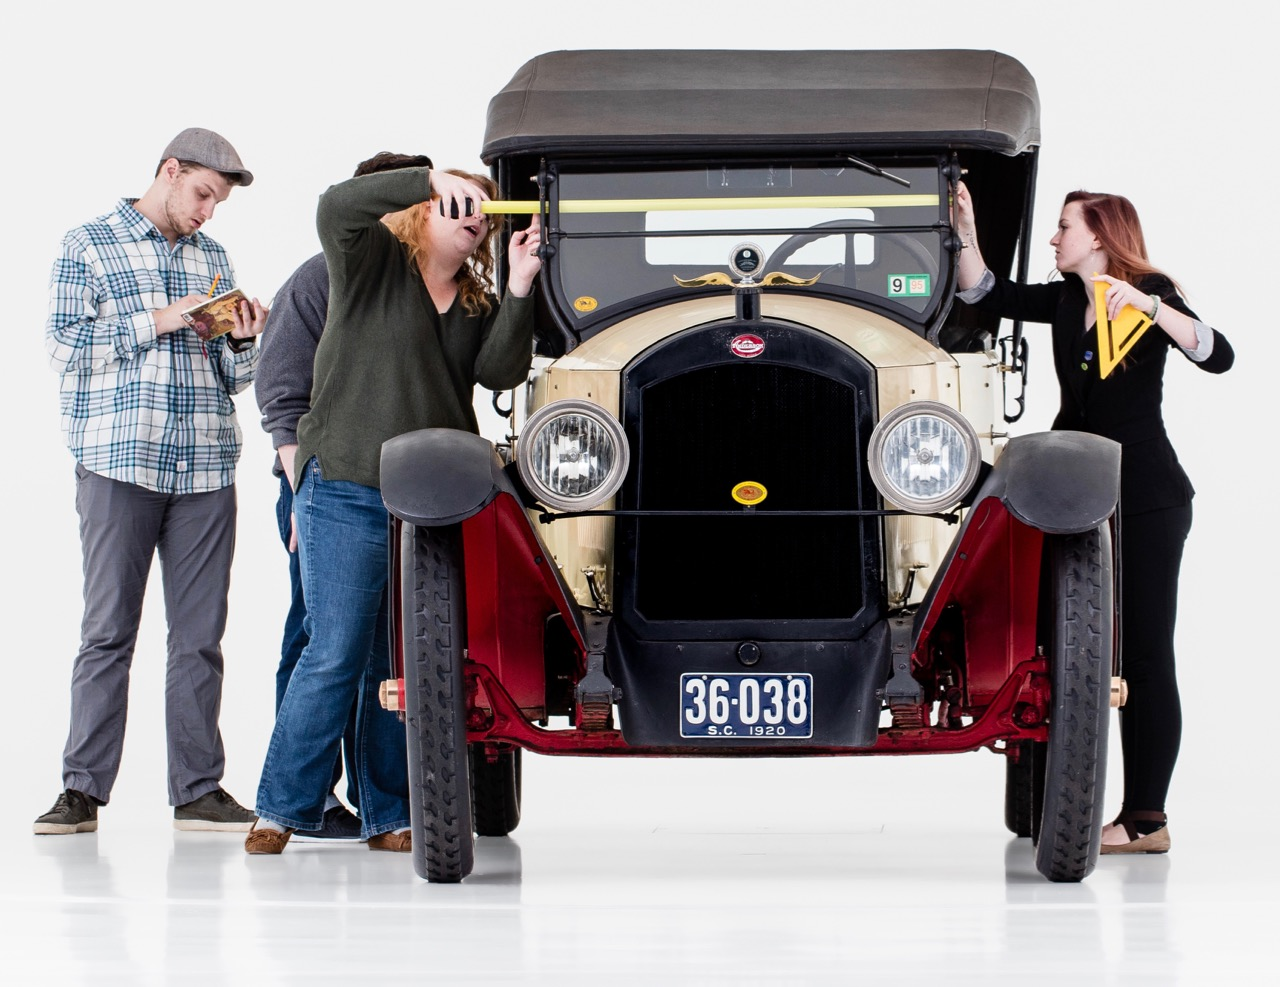 College students save history of newest car on historic register ...